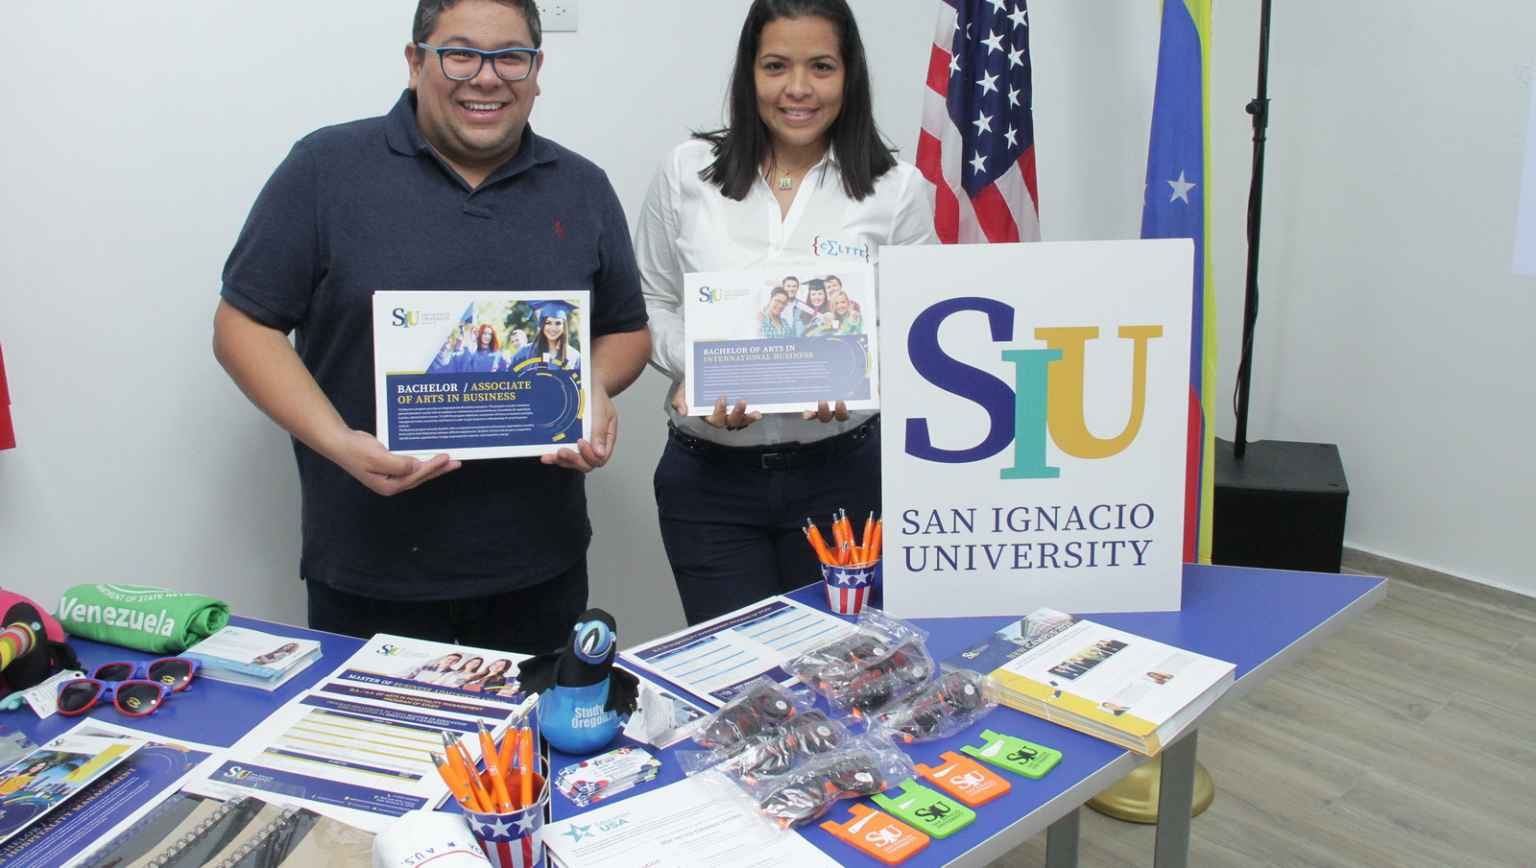 US Universities Visit Caracas to encourage international student enrollment